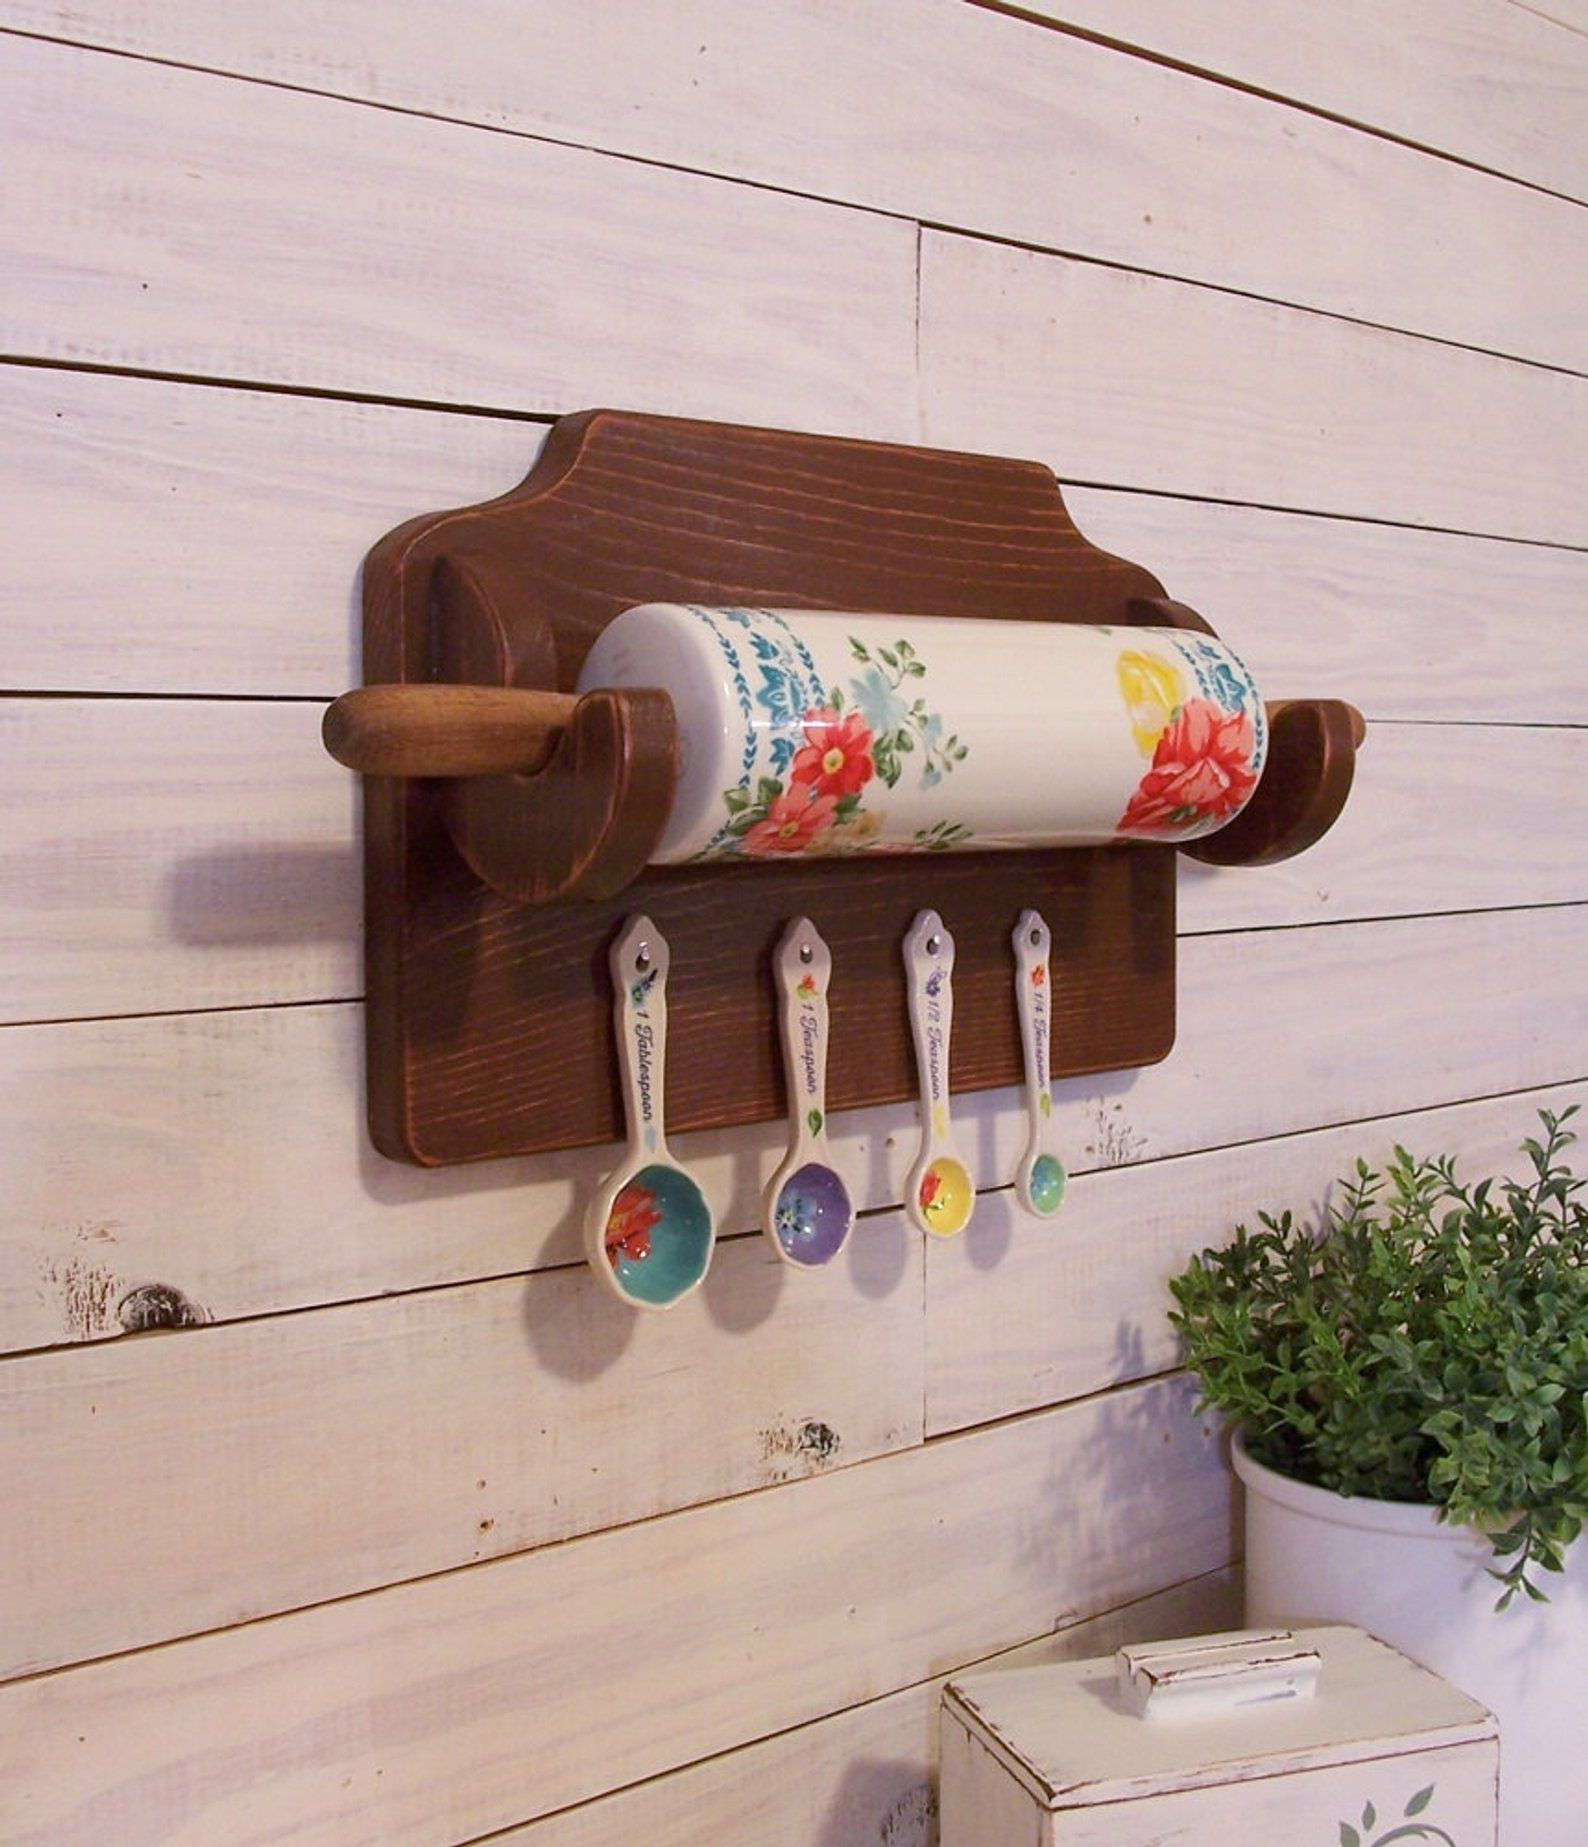 Pioneer Woman Rolling Pin Measuring Spoon Display Rack Farmhouse Style Original Design By Sawdusty Color Choice Pioneer Woman Kitchen Decor Pioneer Woman Kitchen Pioneer Woman Kitchen Design